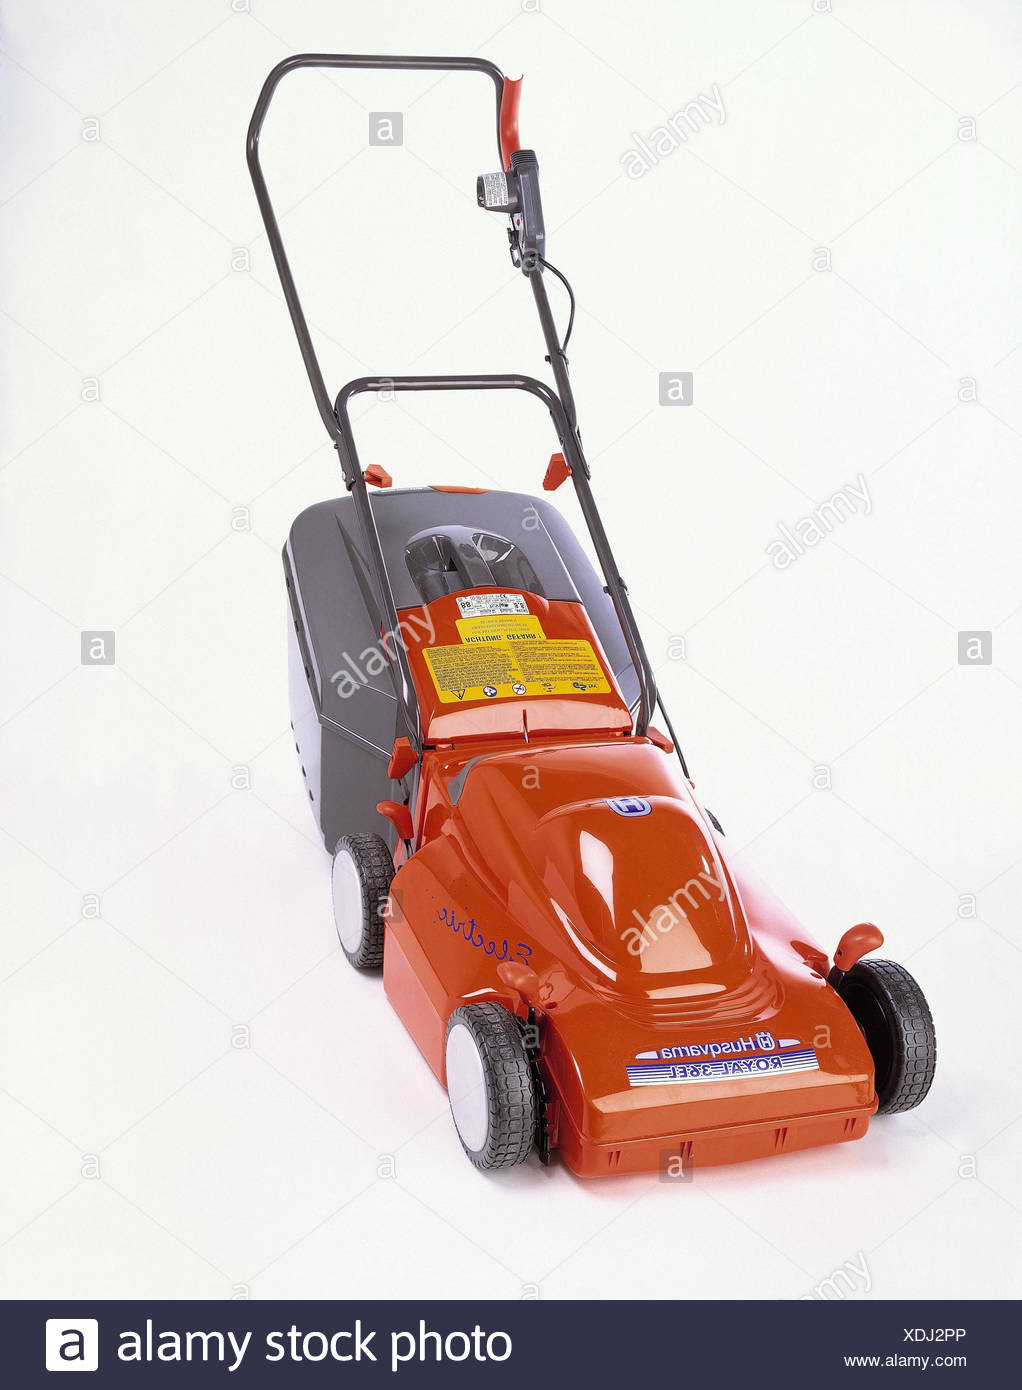 Lawn mower, electrically, producer, Husqvarna, model, royal 35 tablespoons, garden tools, gardening tool, electric lawn mower, rallying case, rallying basket, grass basket, studio, product photography, cut out - Stock Image